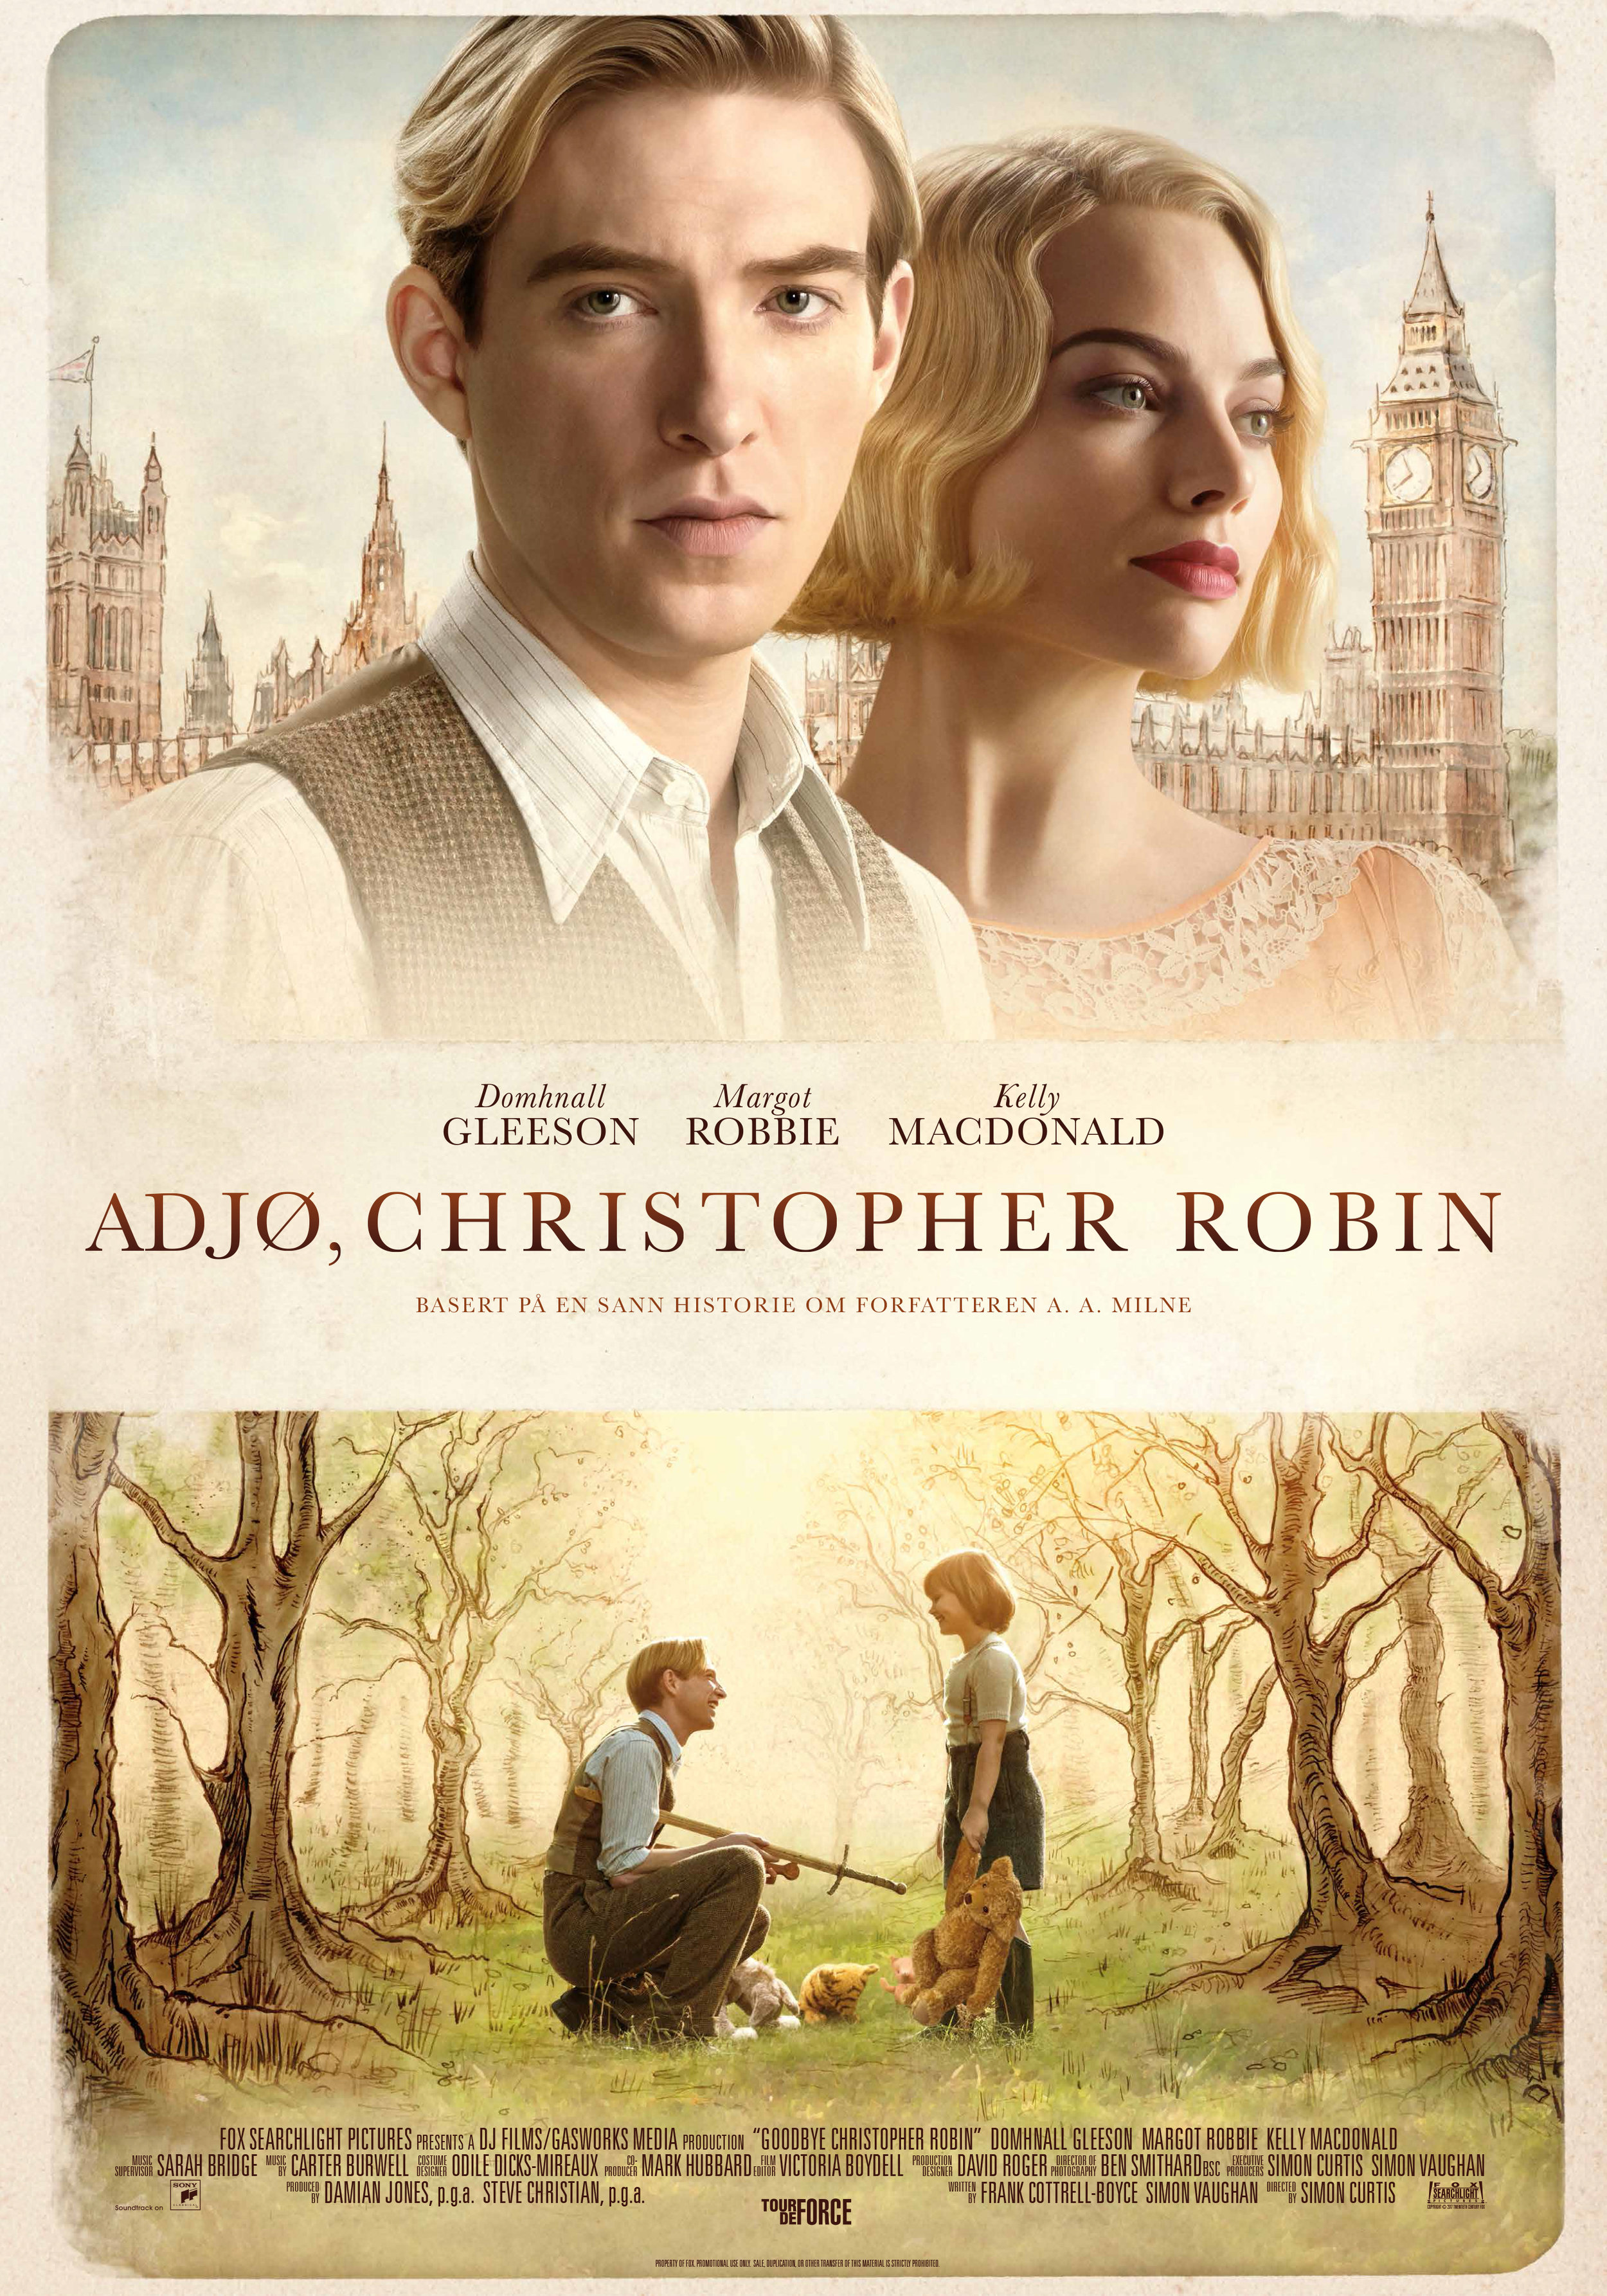 ADJØ, CHRISTOPHER ROBIN